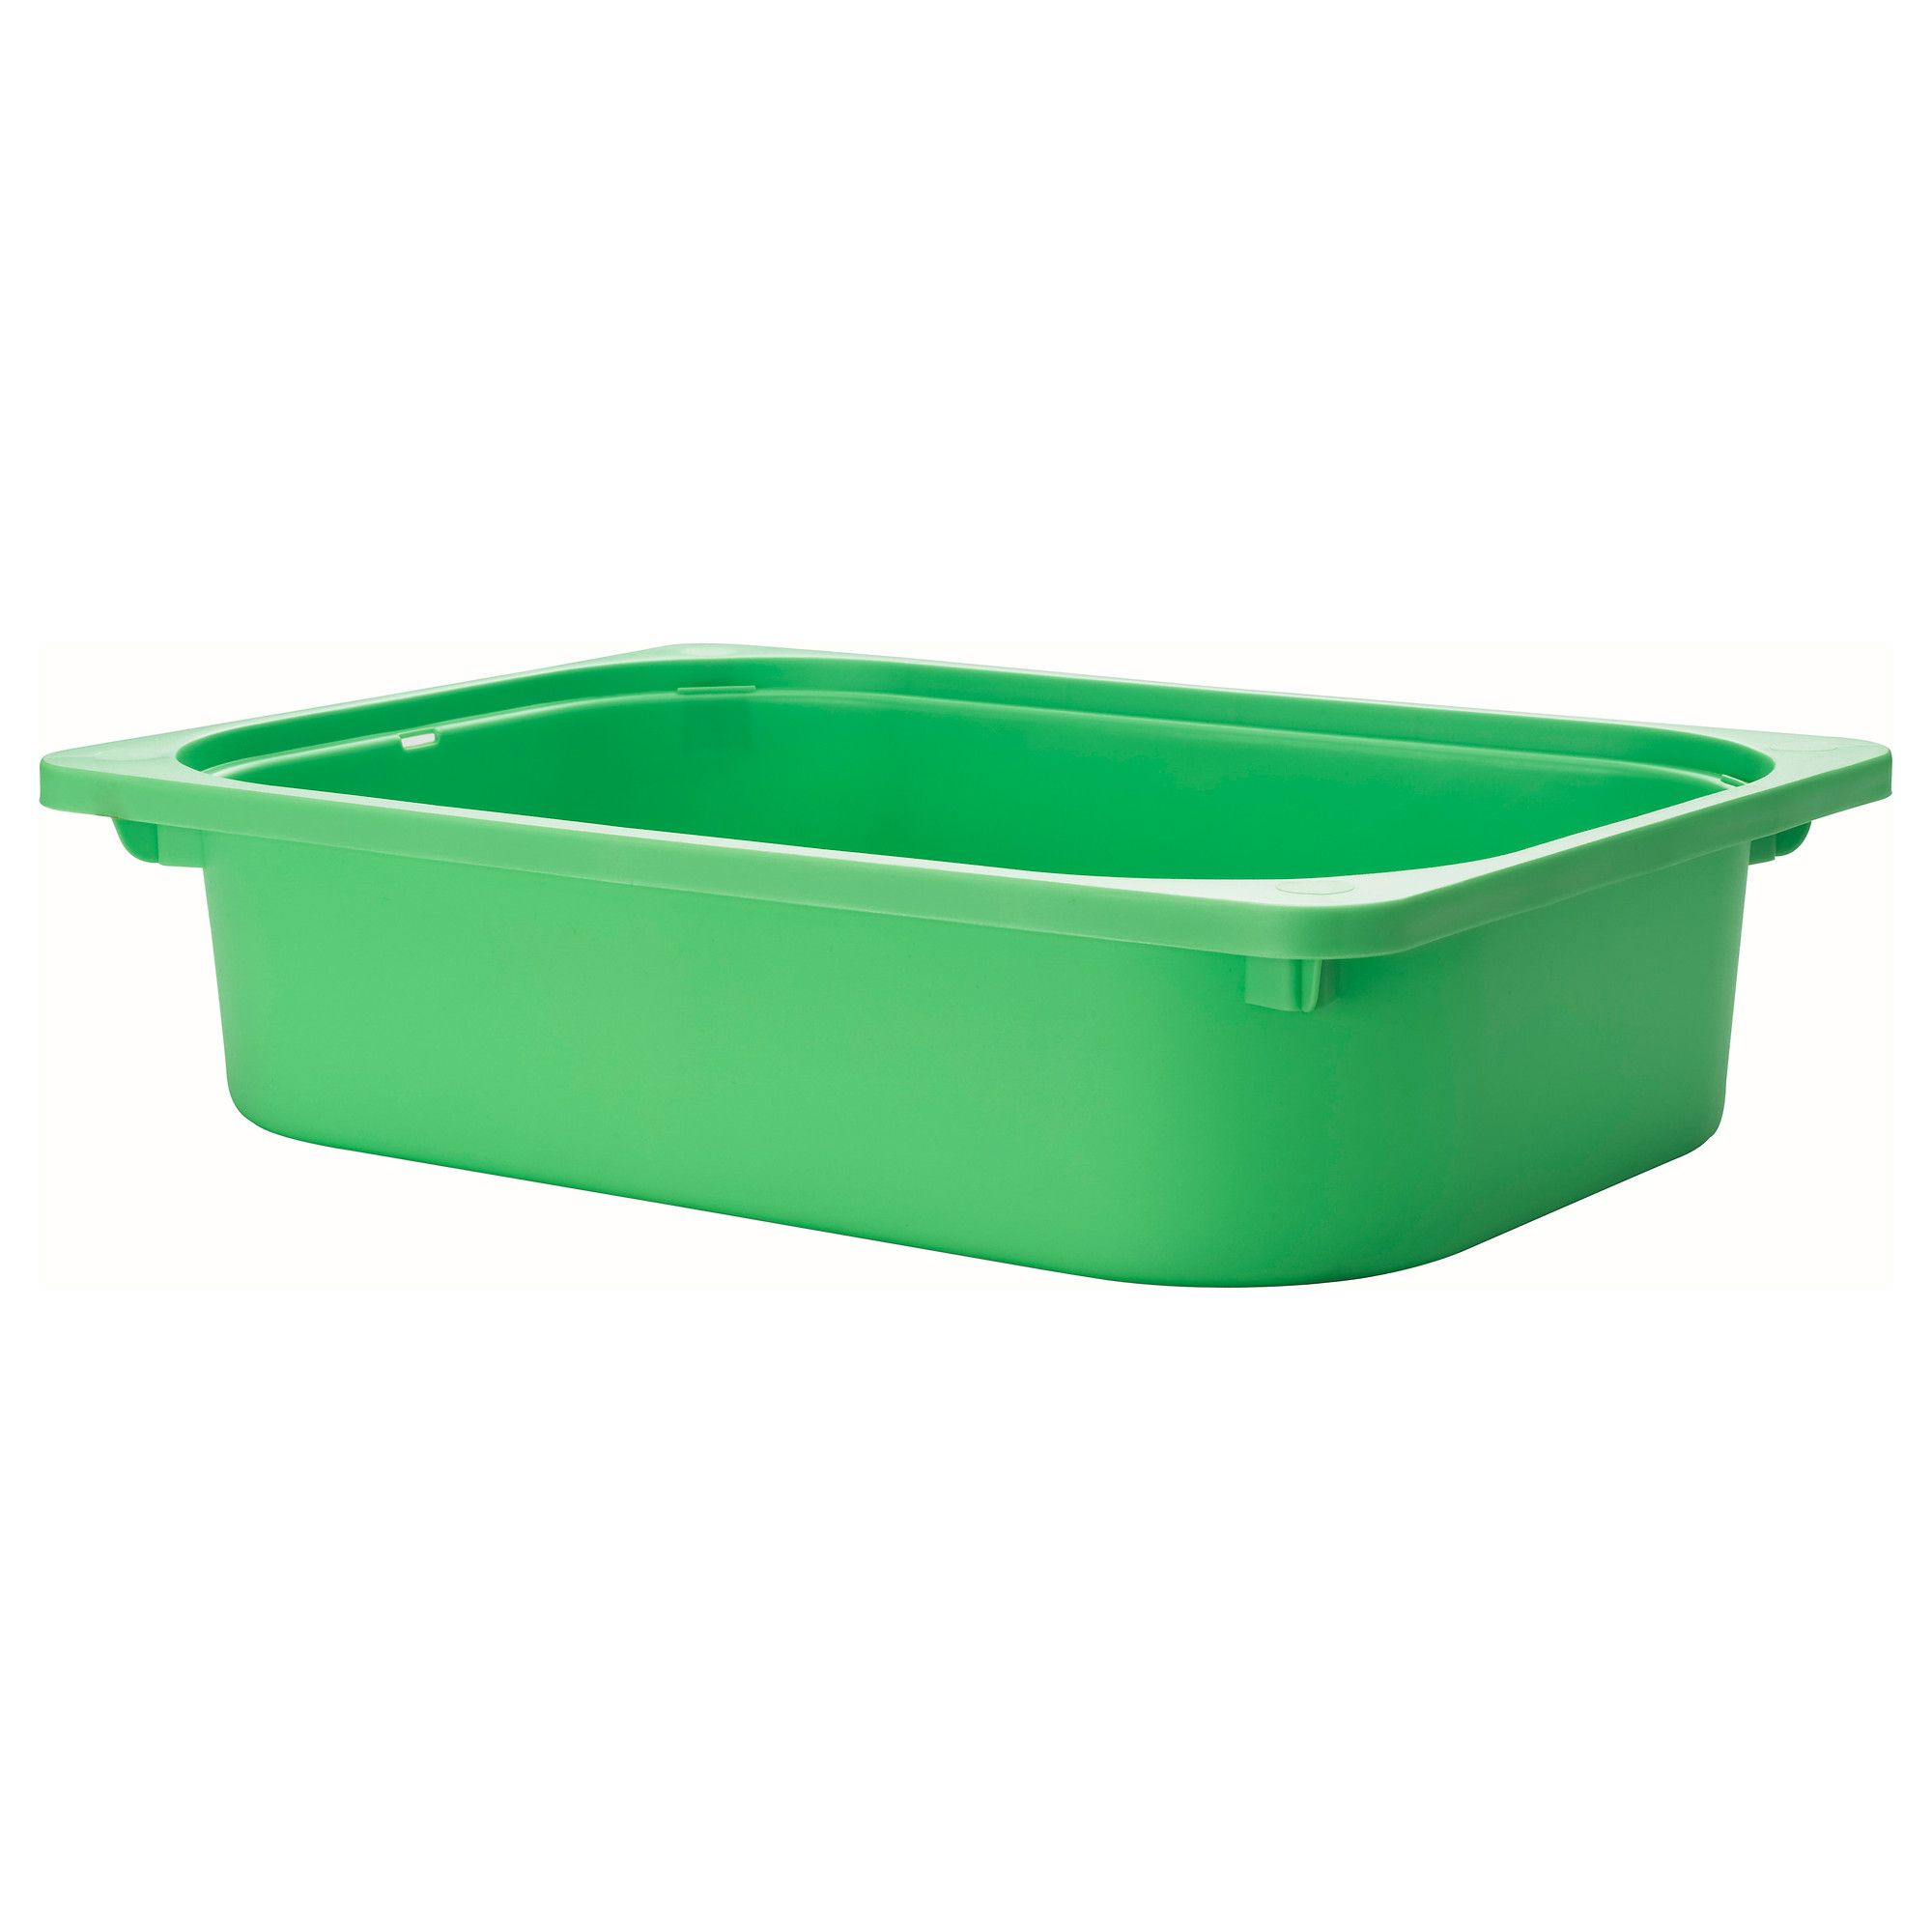 TROFAST Storage Box   Ikea $3 For Box, $2 For Lid Thinking These In White  In Range Of Sizes For My Pantry U0026 Plastics Cupboards